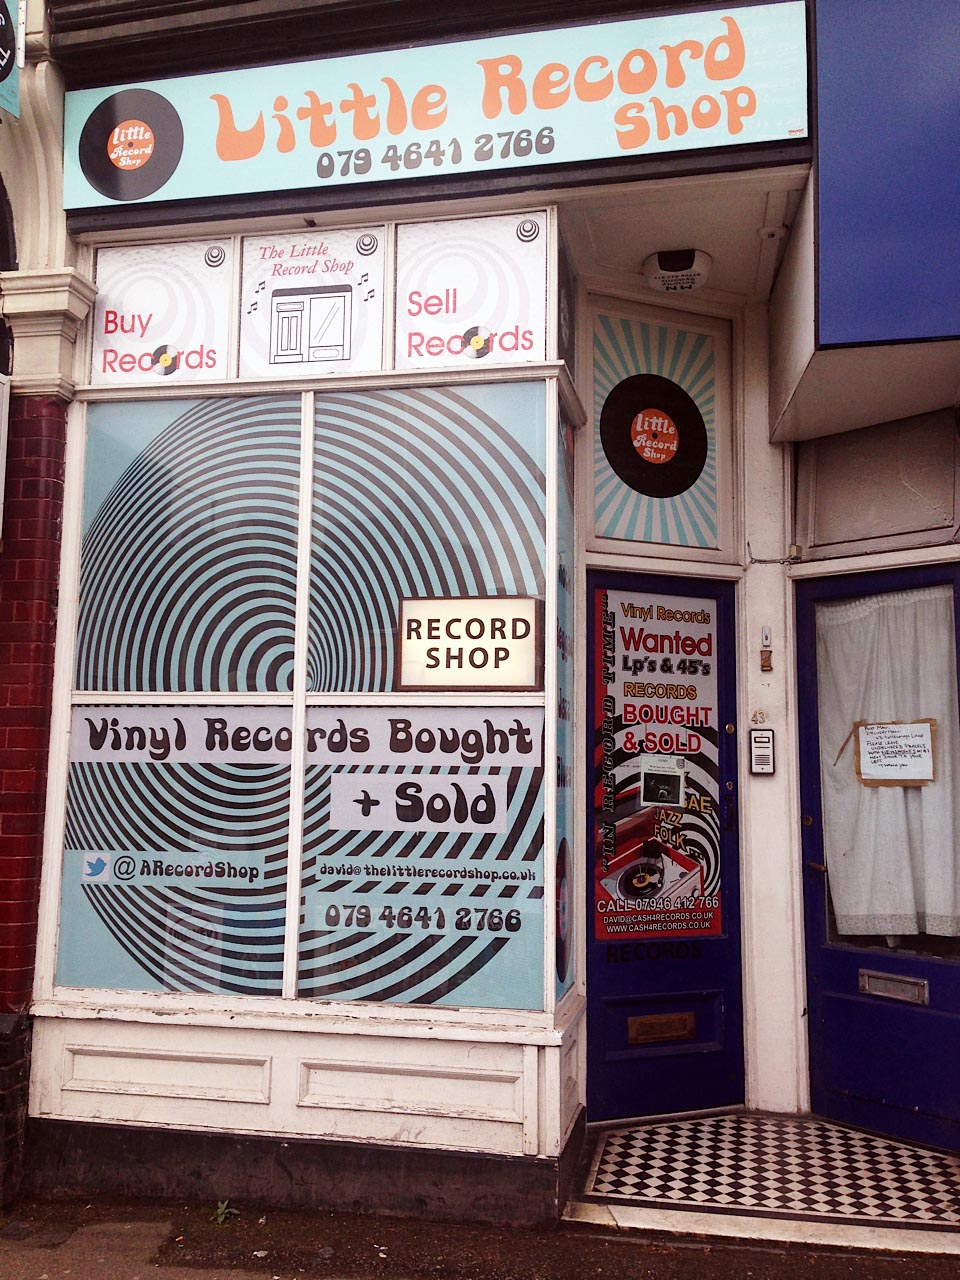 The Little Record Shop, Tottenham Lane, London